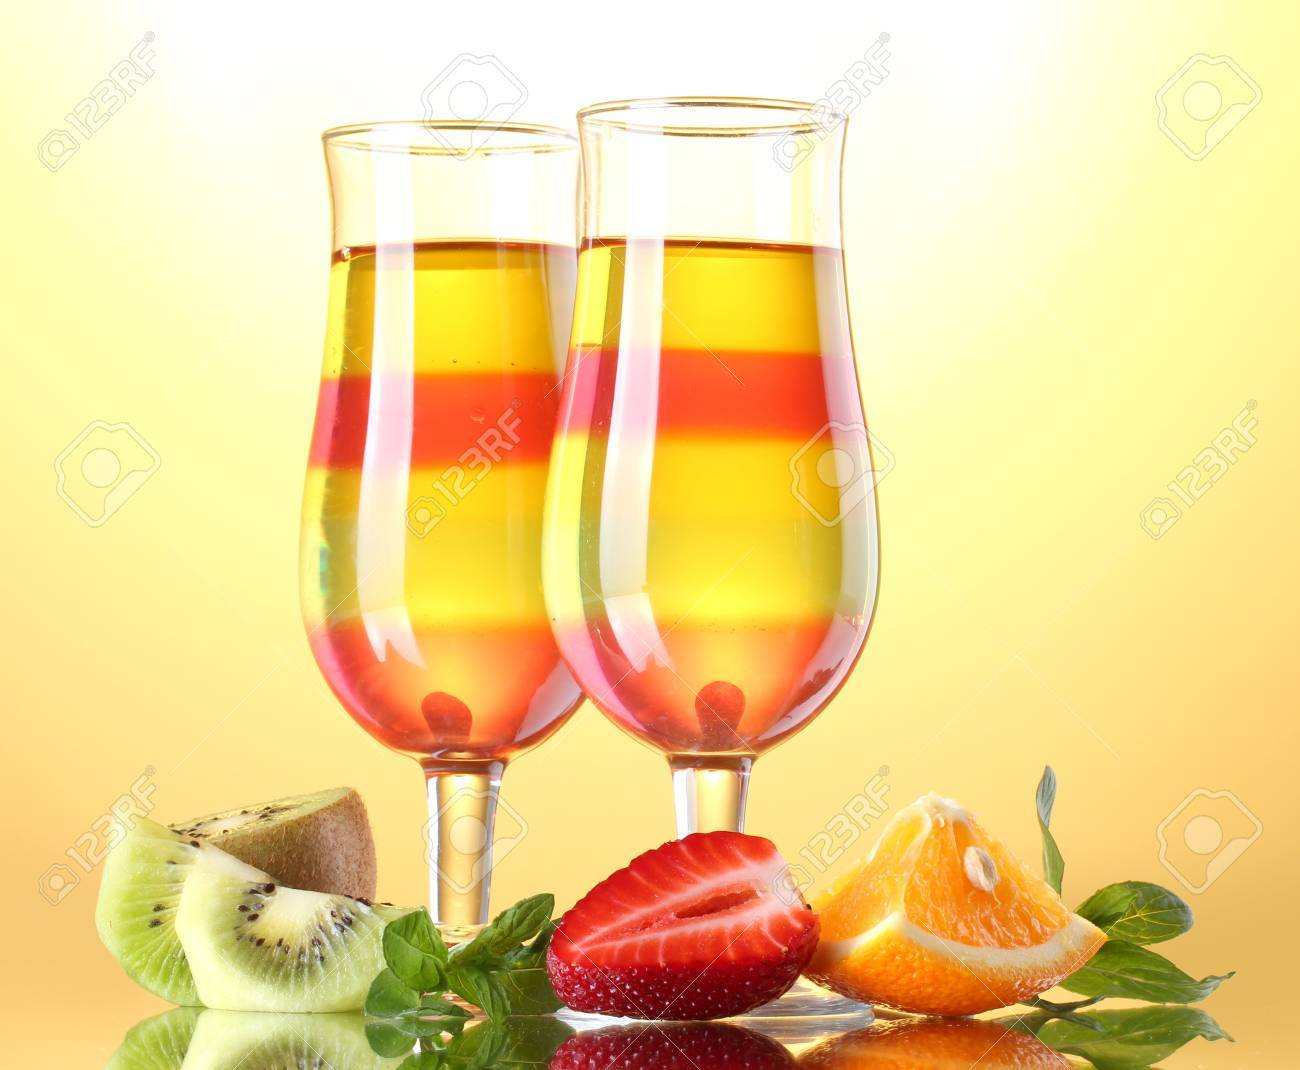 fruit jelly in glasses and fruits on yellow background Stock Photo - 14739287